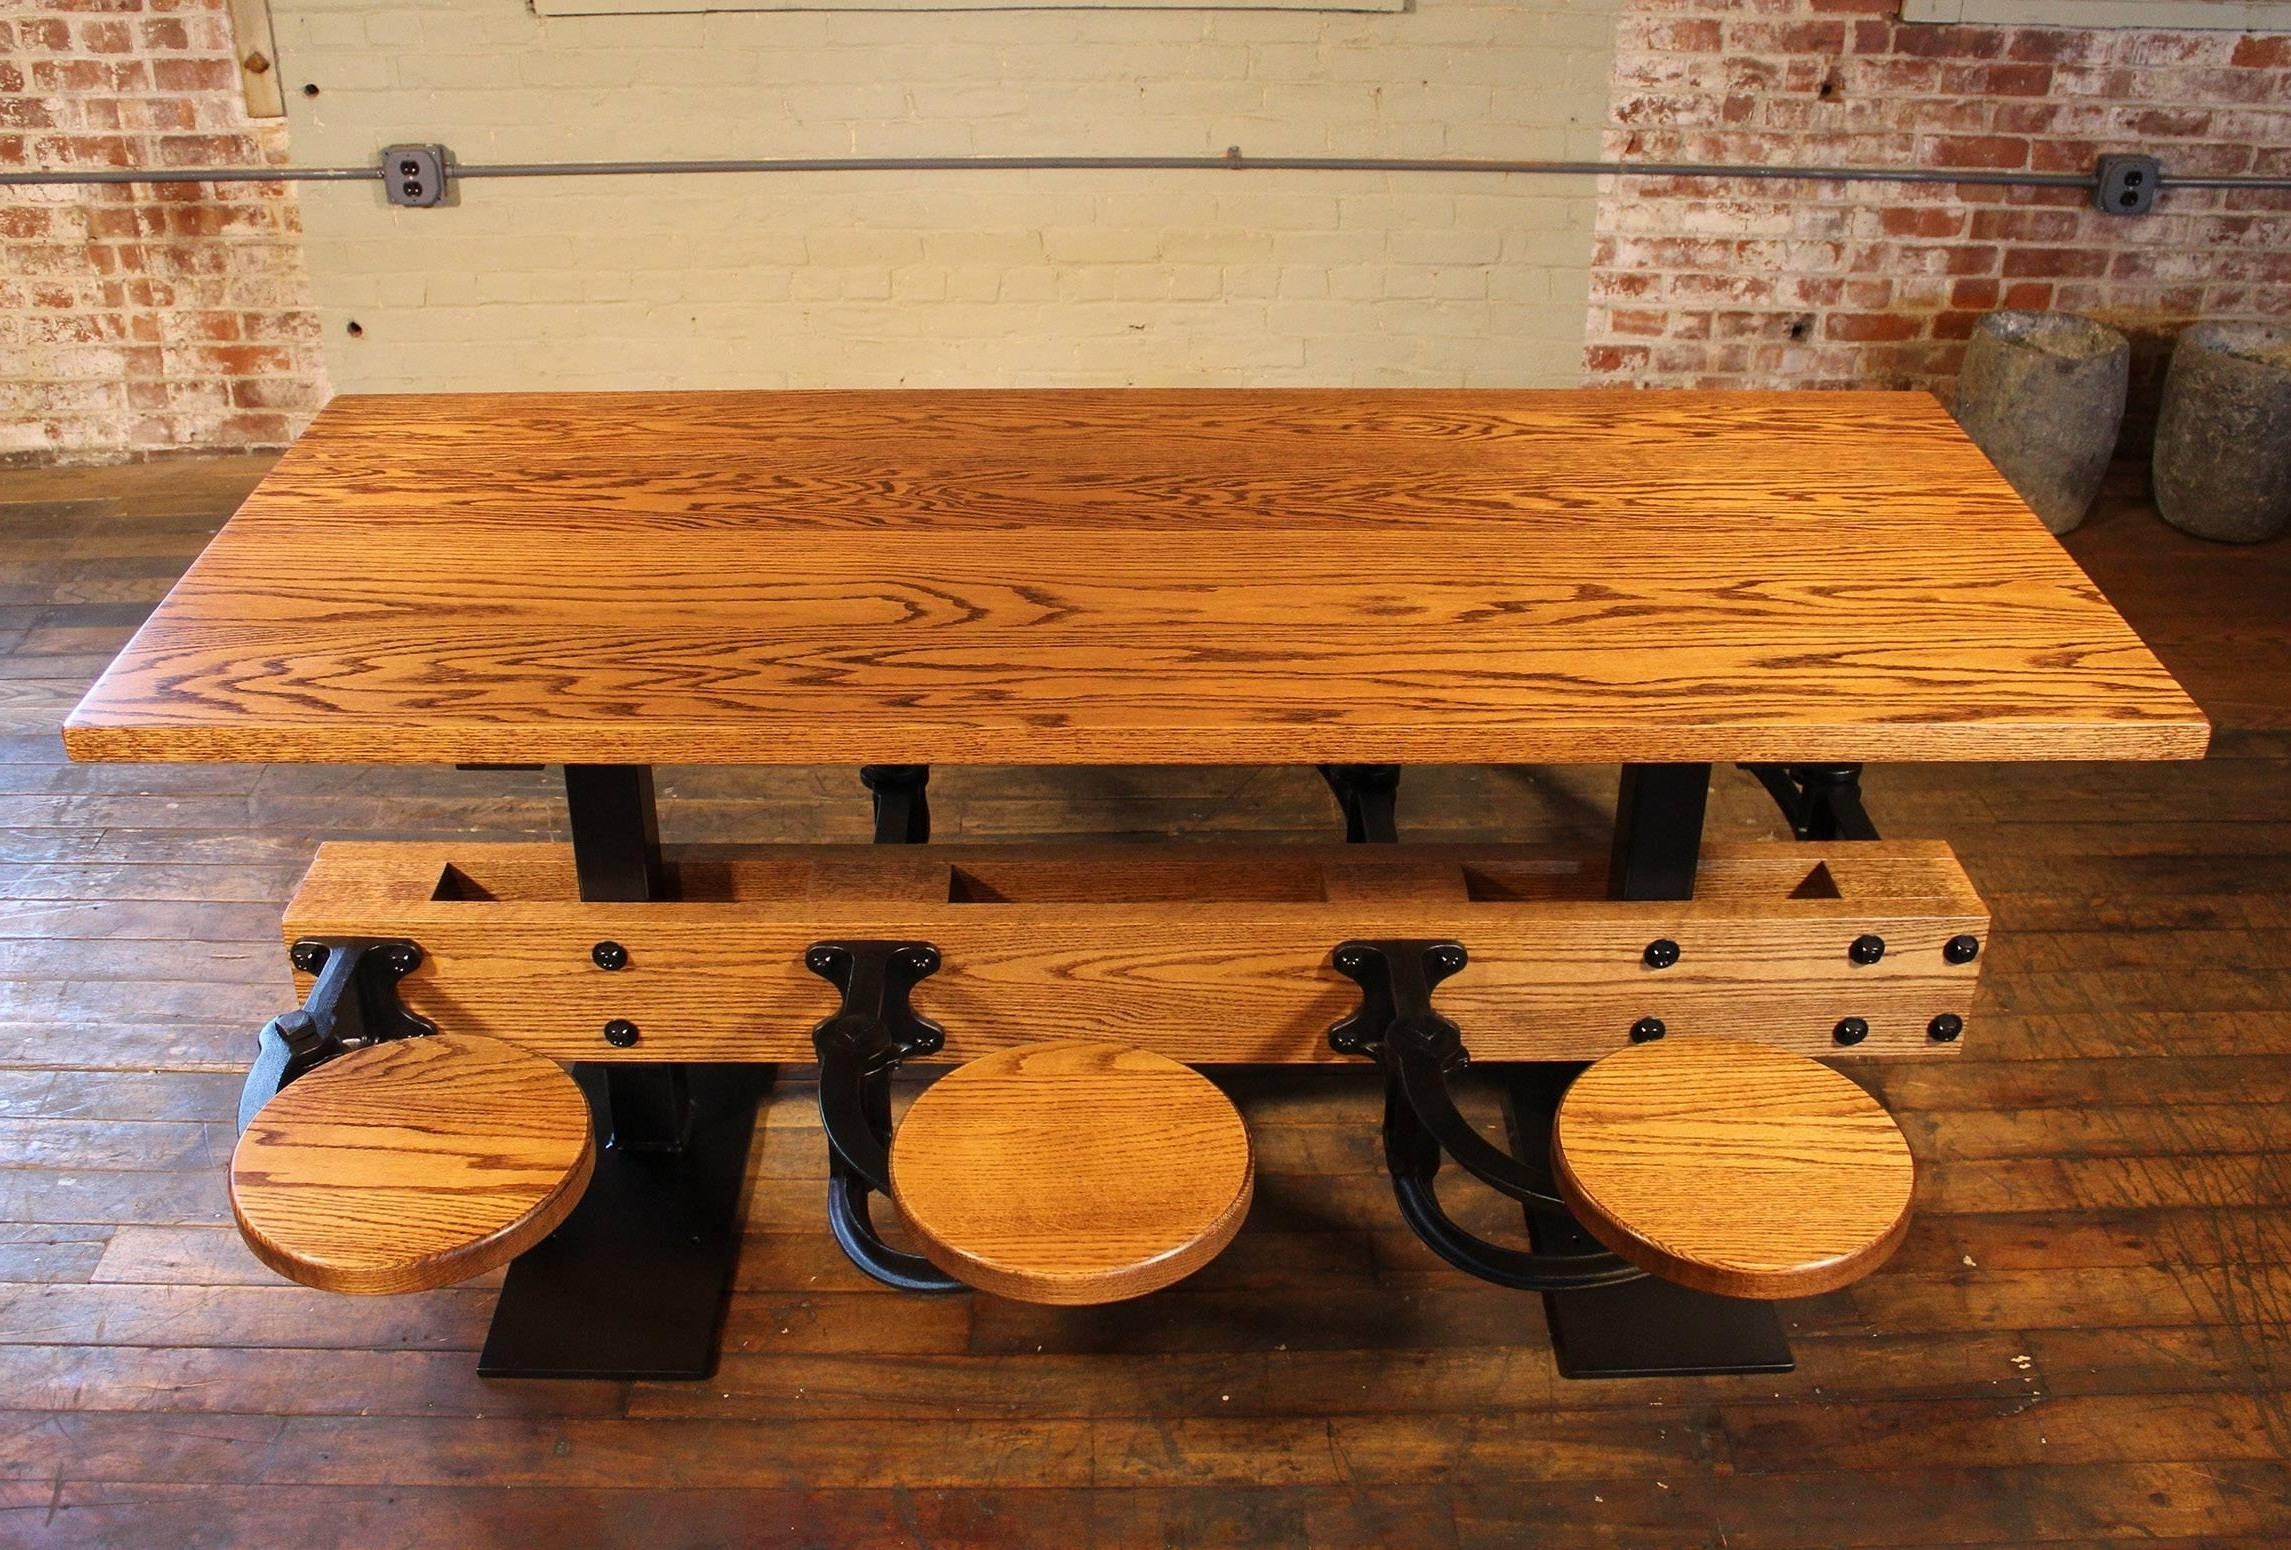 Trendy Dining Tables With Attached Stools Intended For Oak Cafe Style Dining Table With Attached Swing Out Seats For Sale (View 22 of 25)